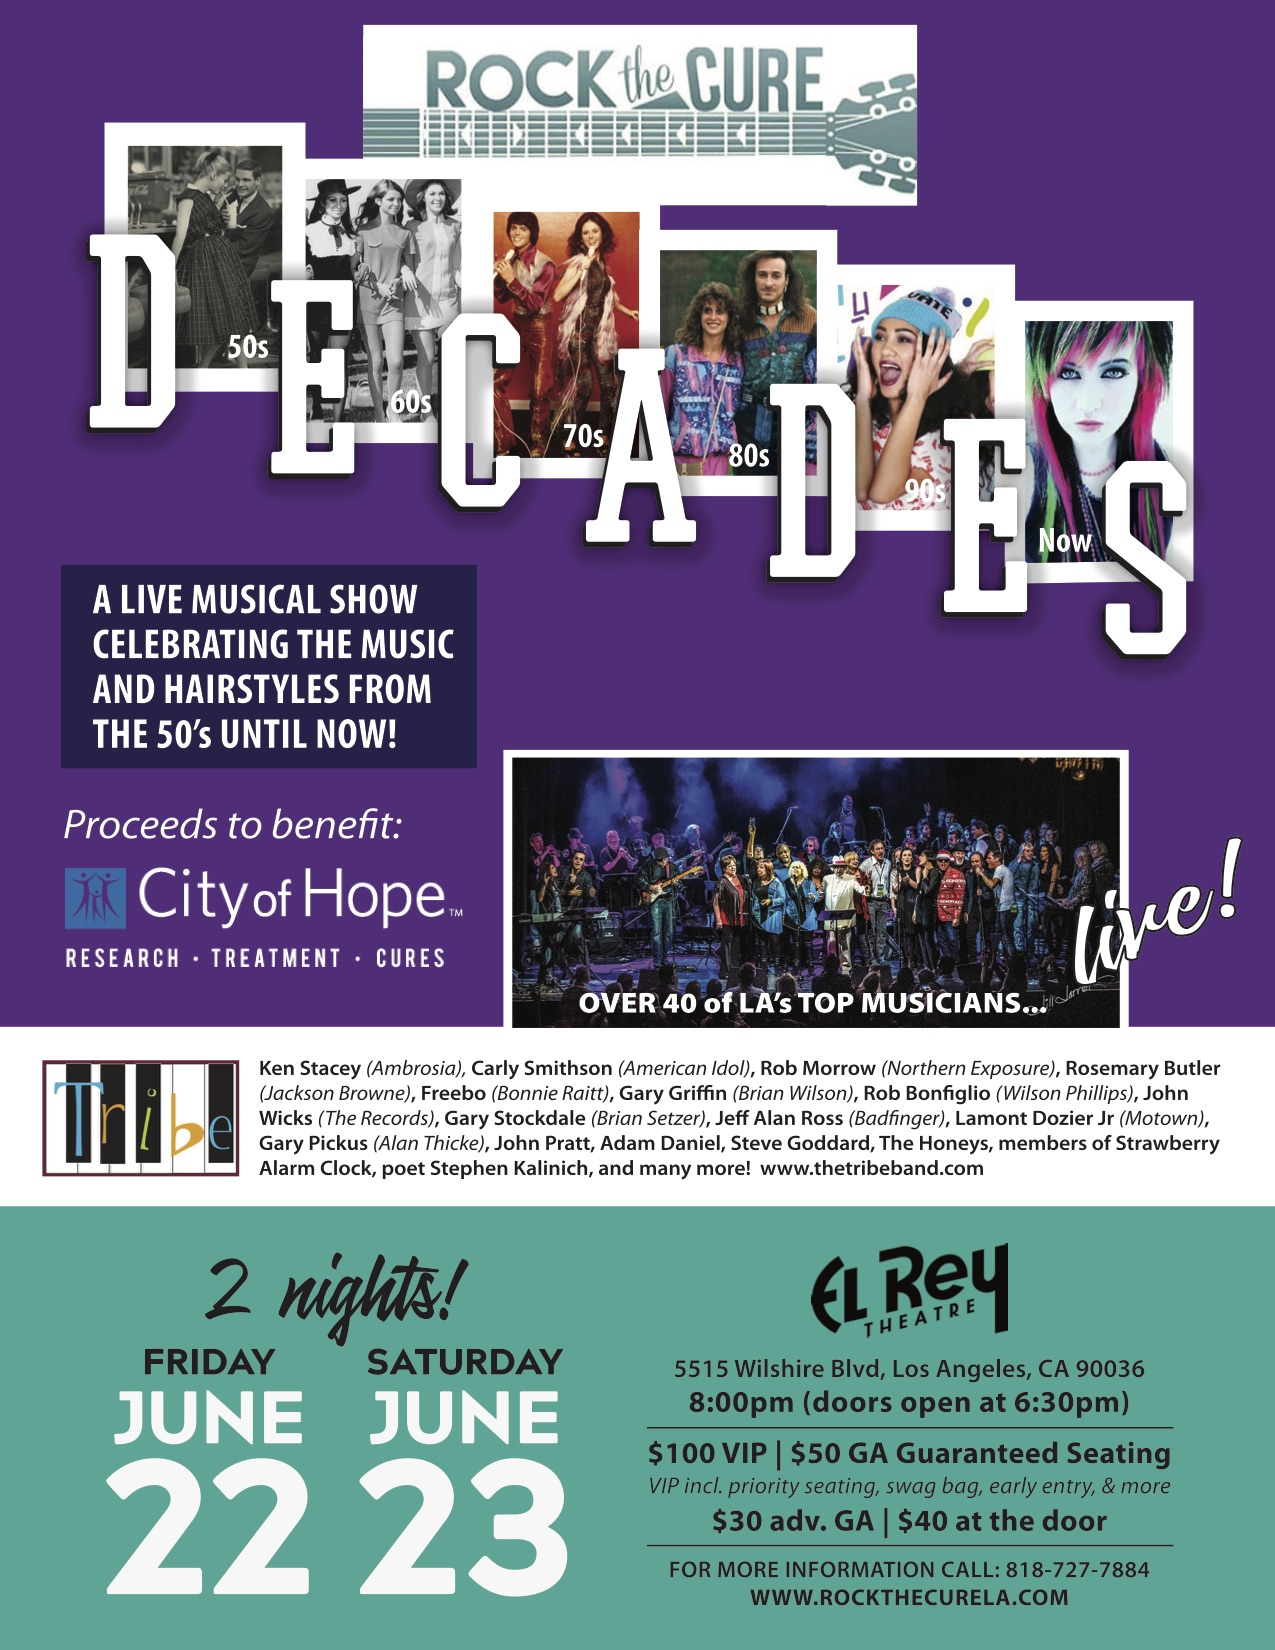 The concert will be at The El Rey Theater on Friday and Saturday, June 22 and 23, at 8pm; doors open at 6:30 pm for a Silent Auction.